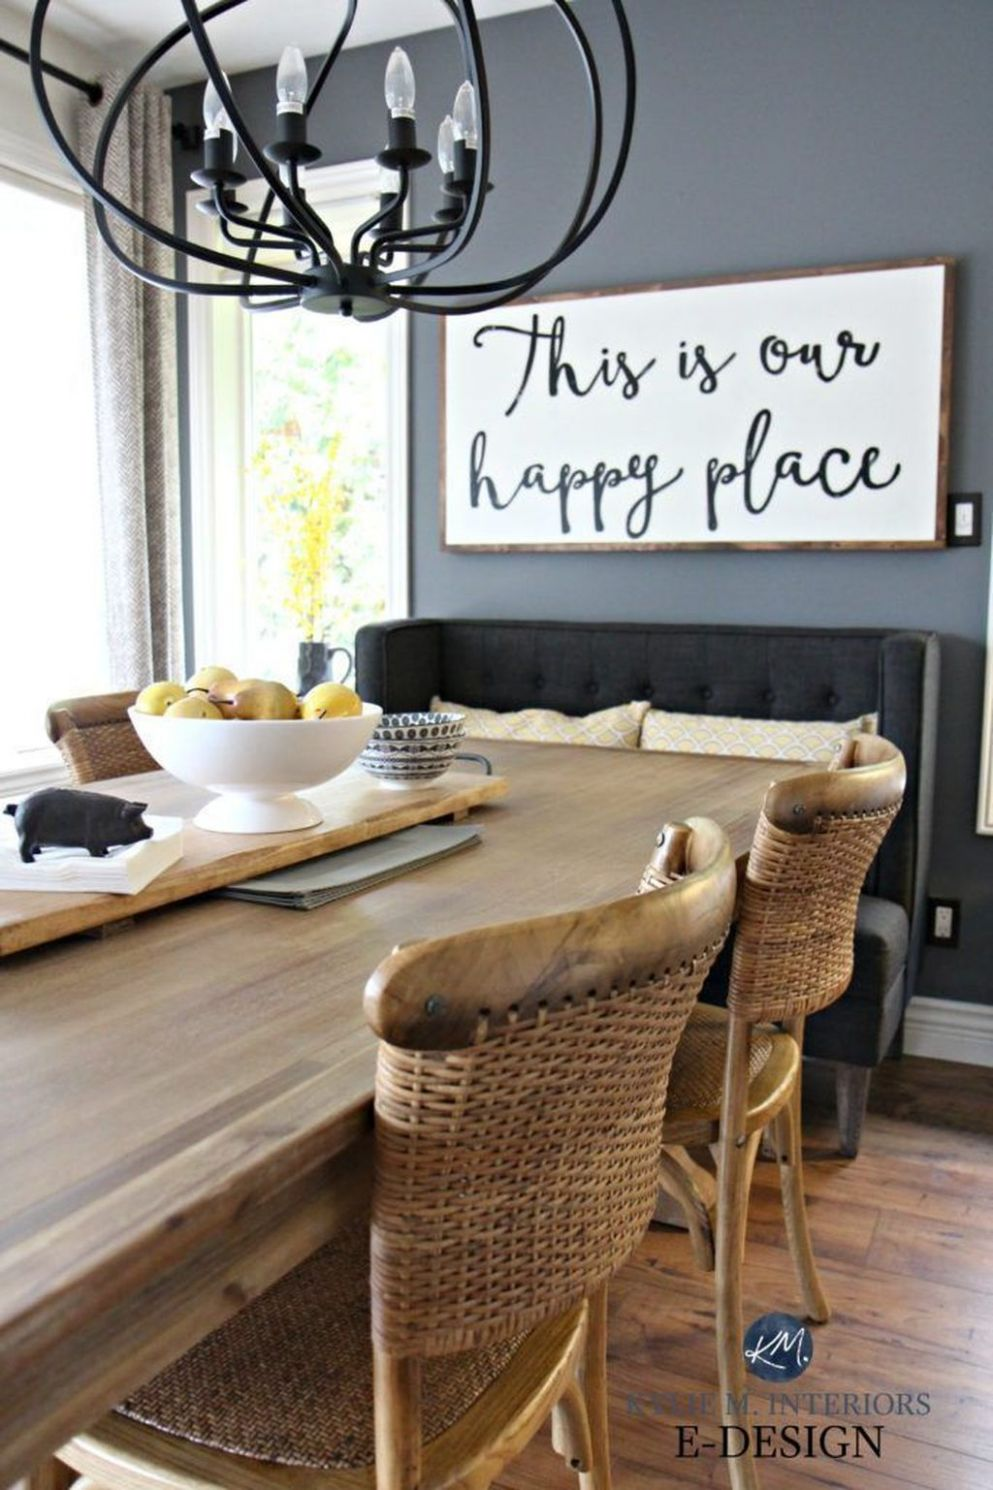 12 Nice Dining Room Wall Decor Ideas - BELIHOUSE